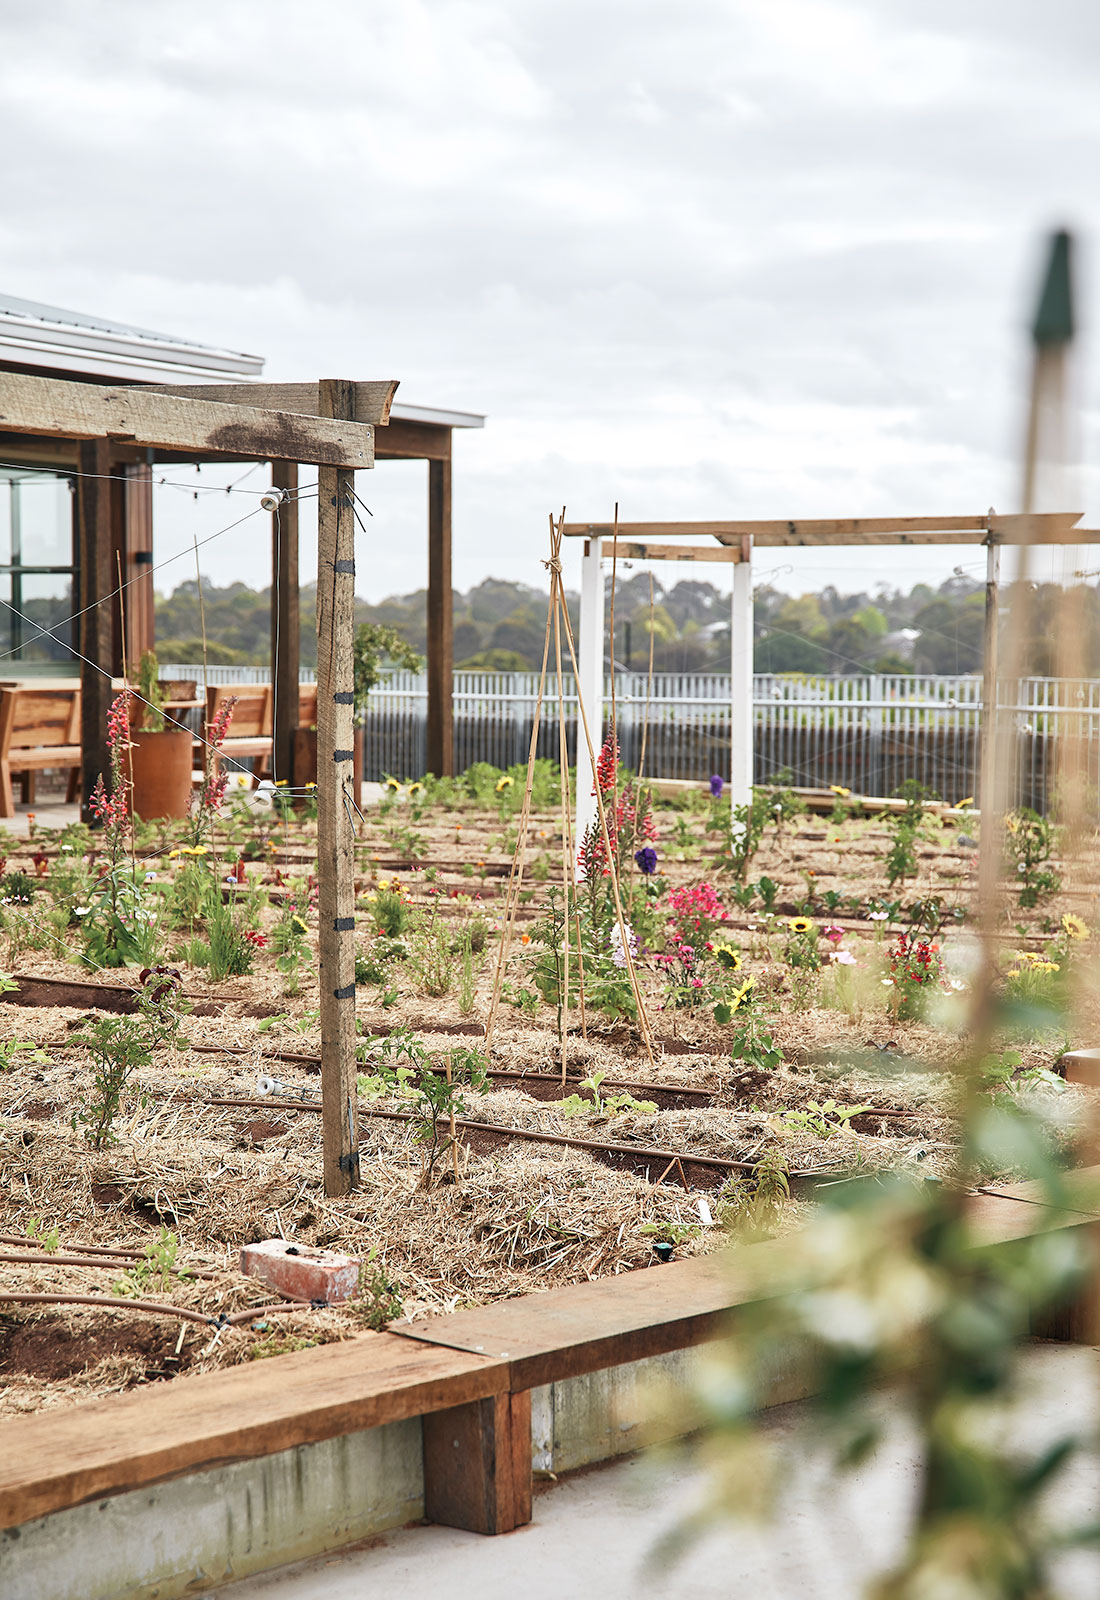 The roof area of Burwood Brickworks is utilised as an urban farm and eatery that helps to connect people to the environment and their food.